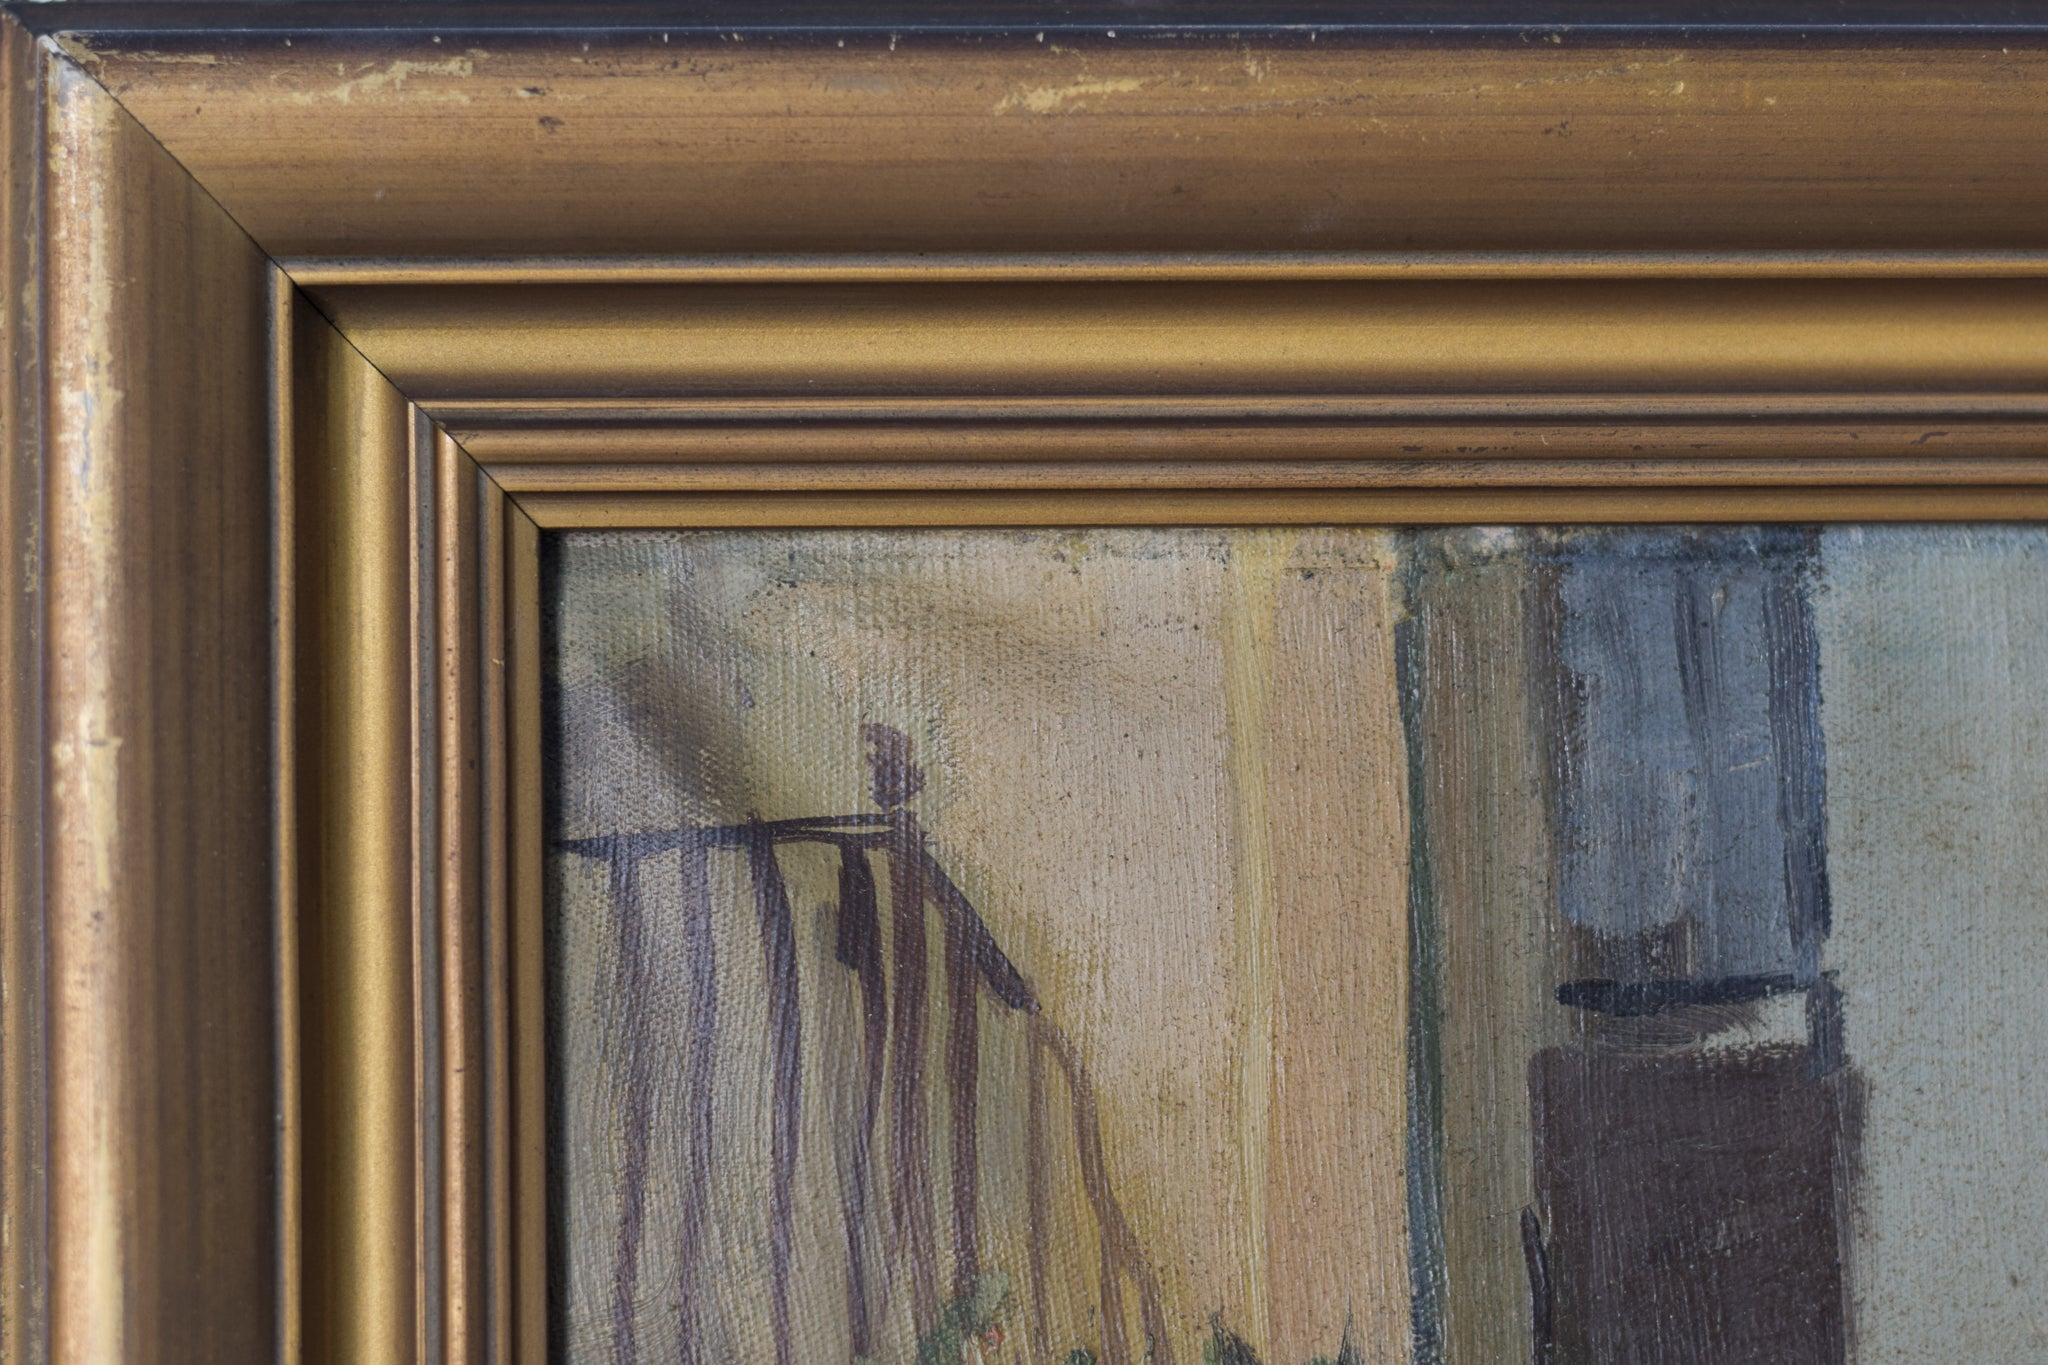 Post-Impressionist Style Painting of Barcelona Old Town_Frame detail